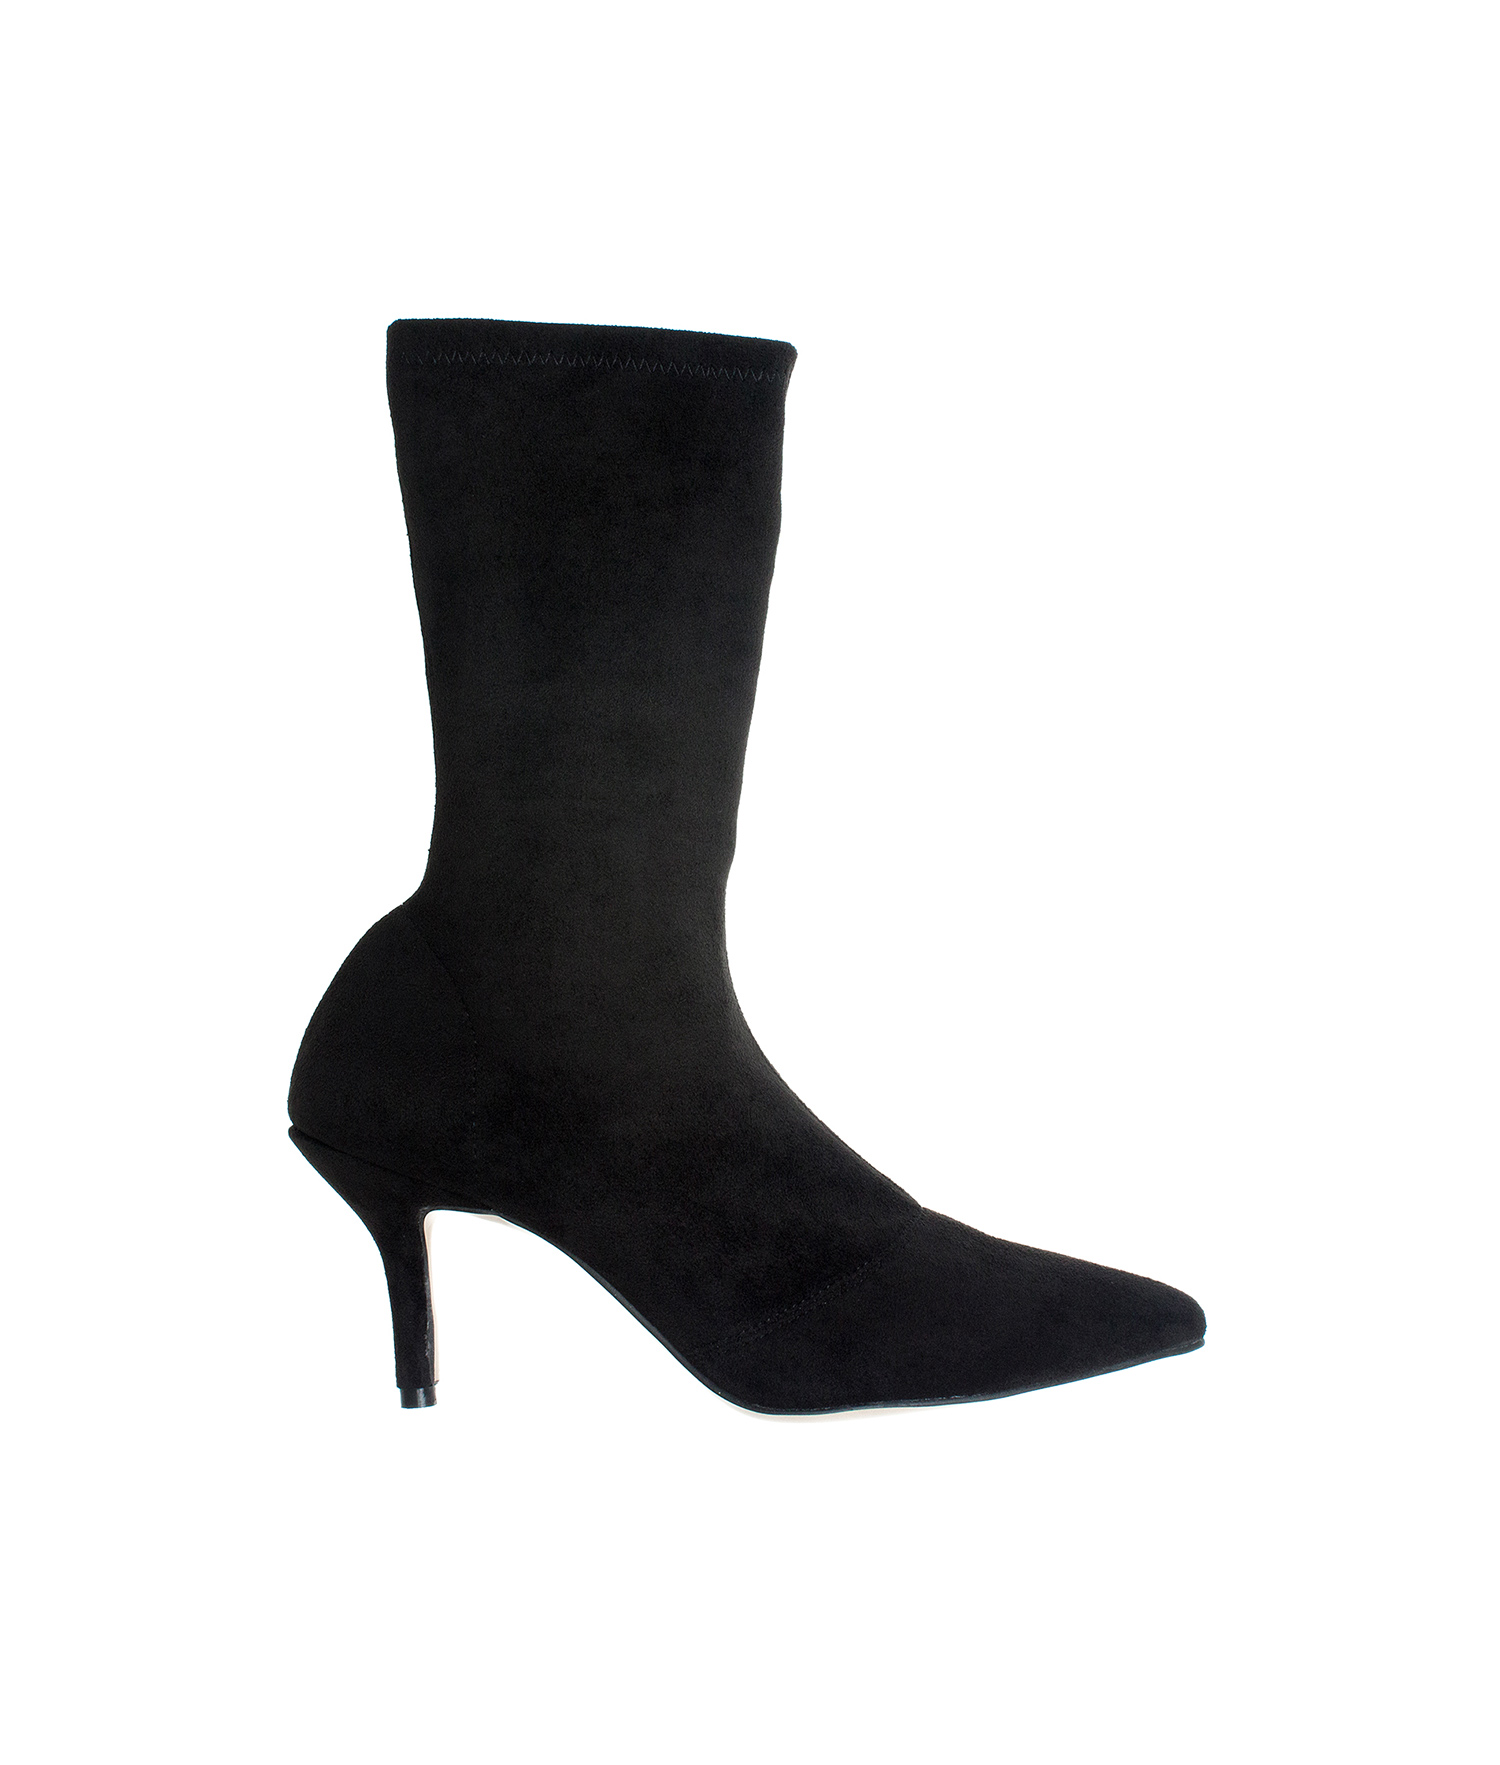 700cb38ed295c AnnaKastle Womens Pointy Toe Stretch Mid-Calf Boots Kitten Heel Booties  SuedeBlack